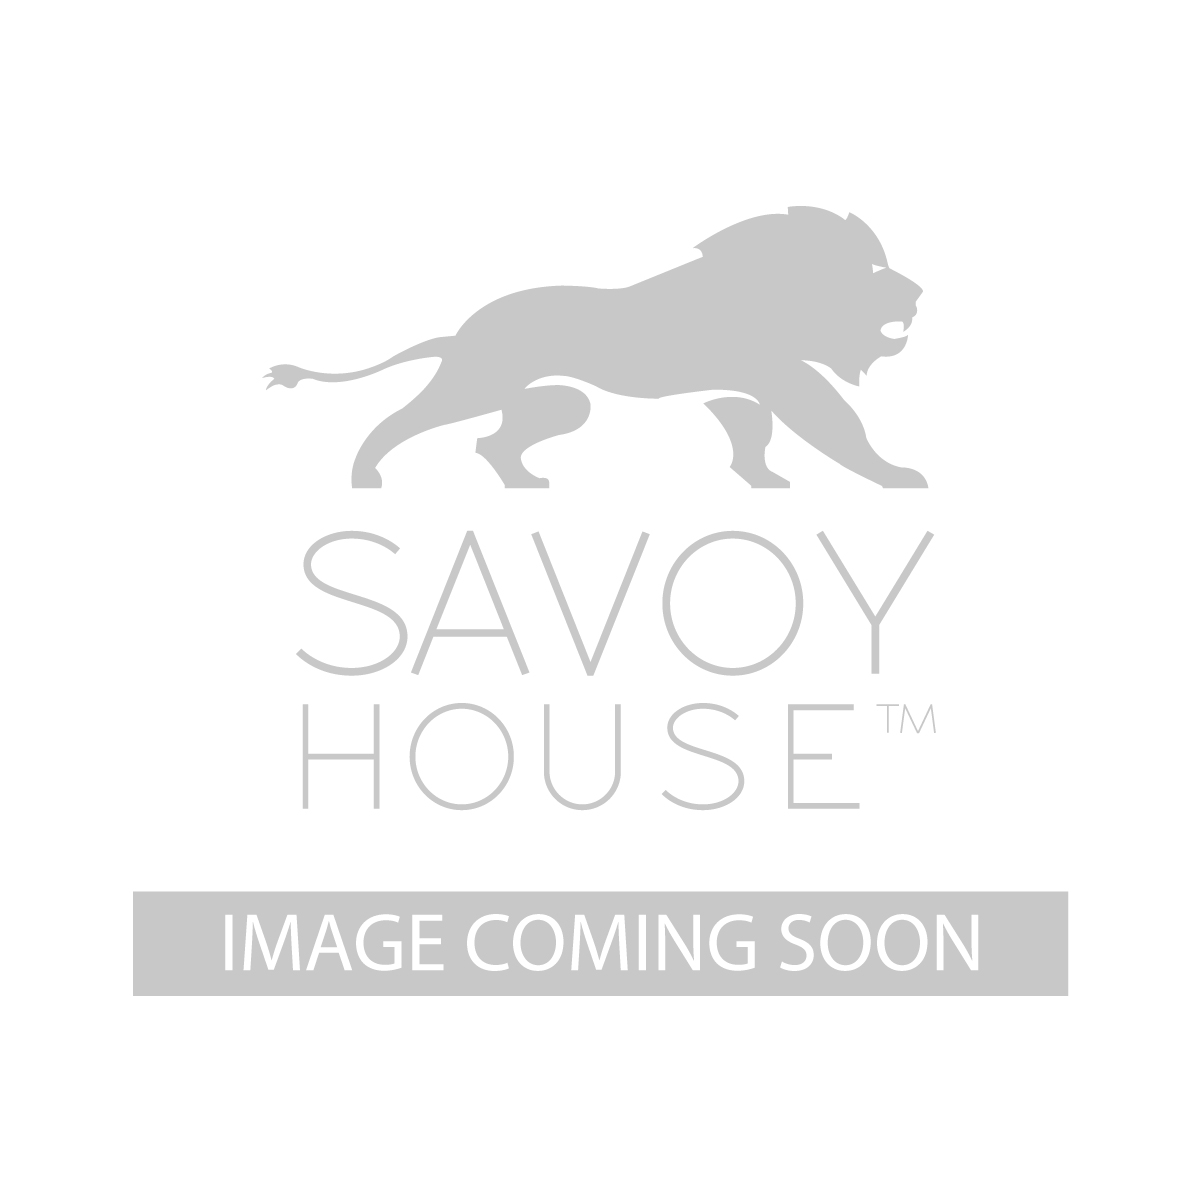 80 inch ceiling fans bent the pine harbor 52 52sgc5rv80 52inch ceiling fan by savoy house